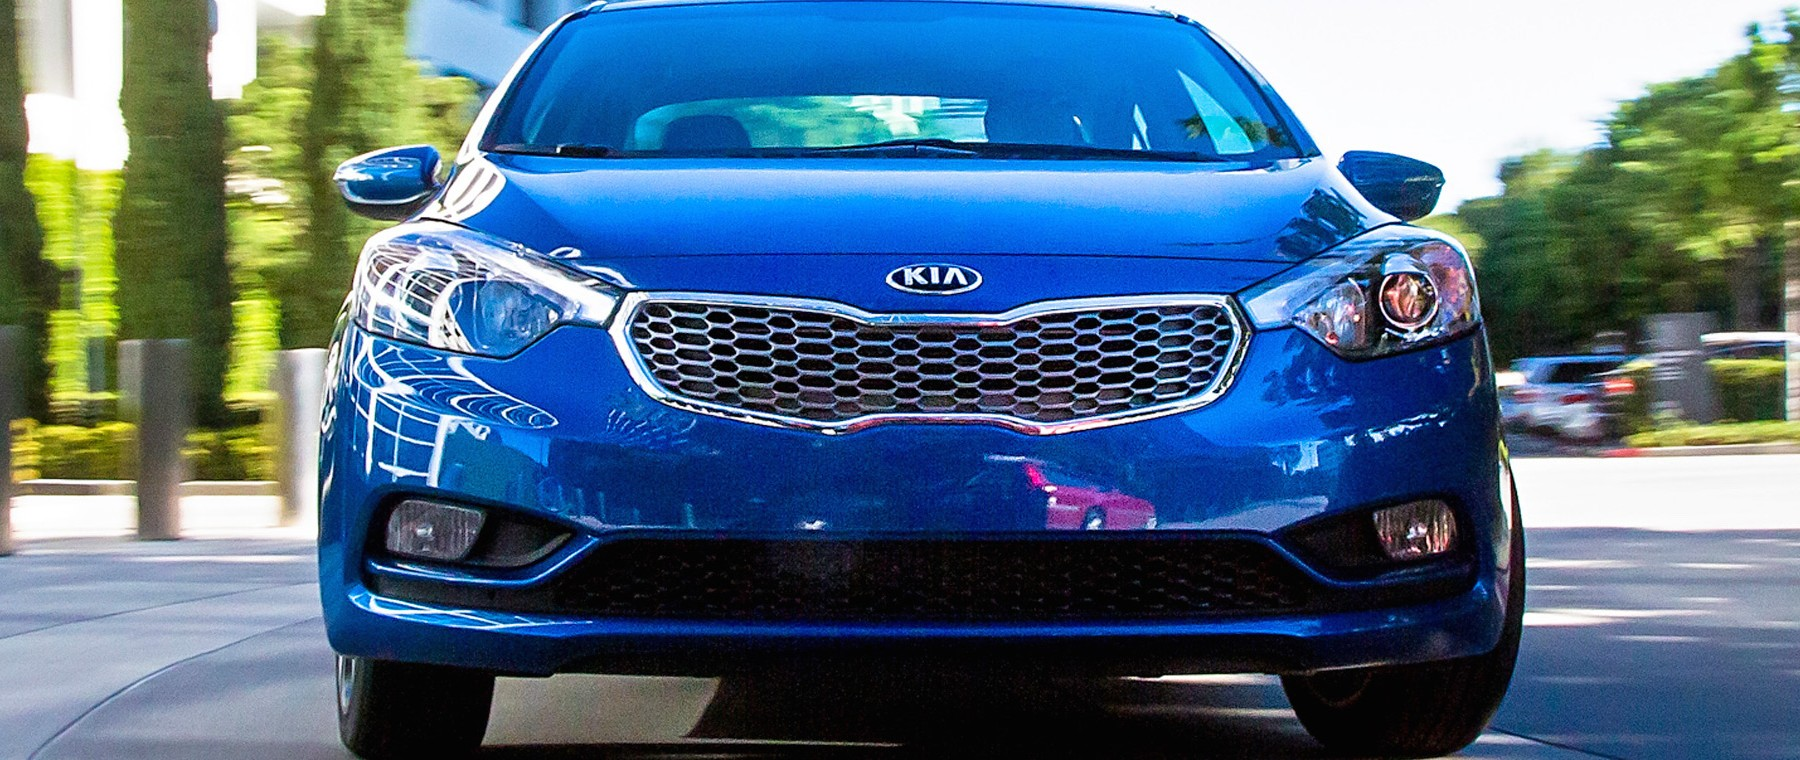 New Kia Vehicles For Sale Near Boston Ma Quirk Kia Autos